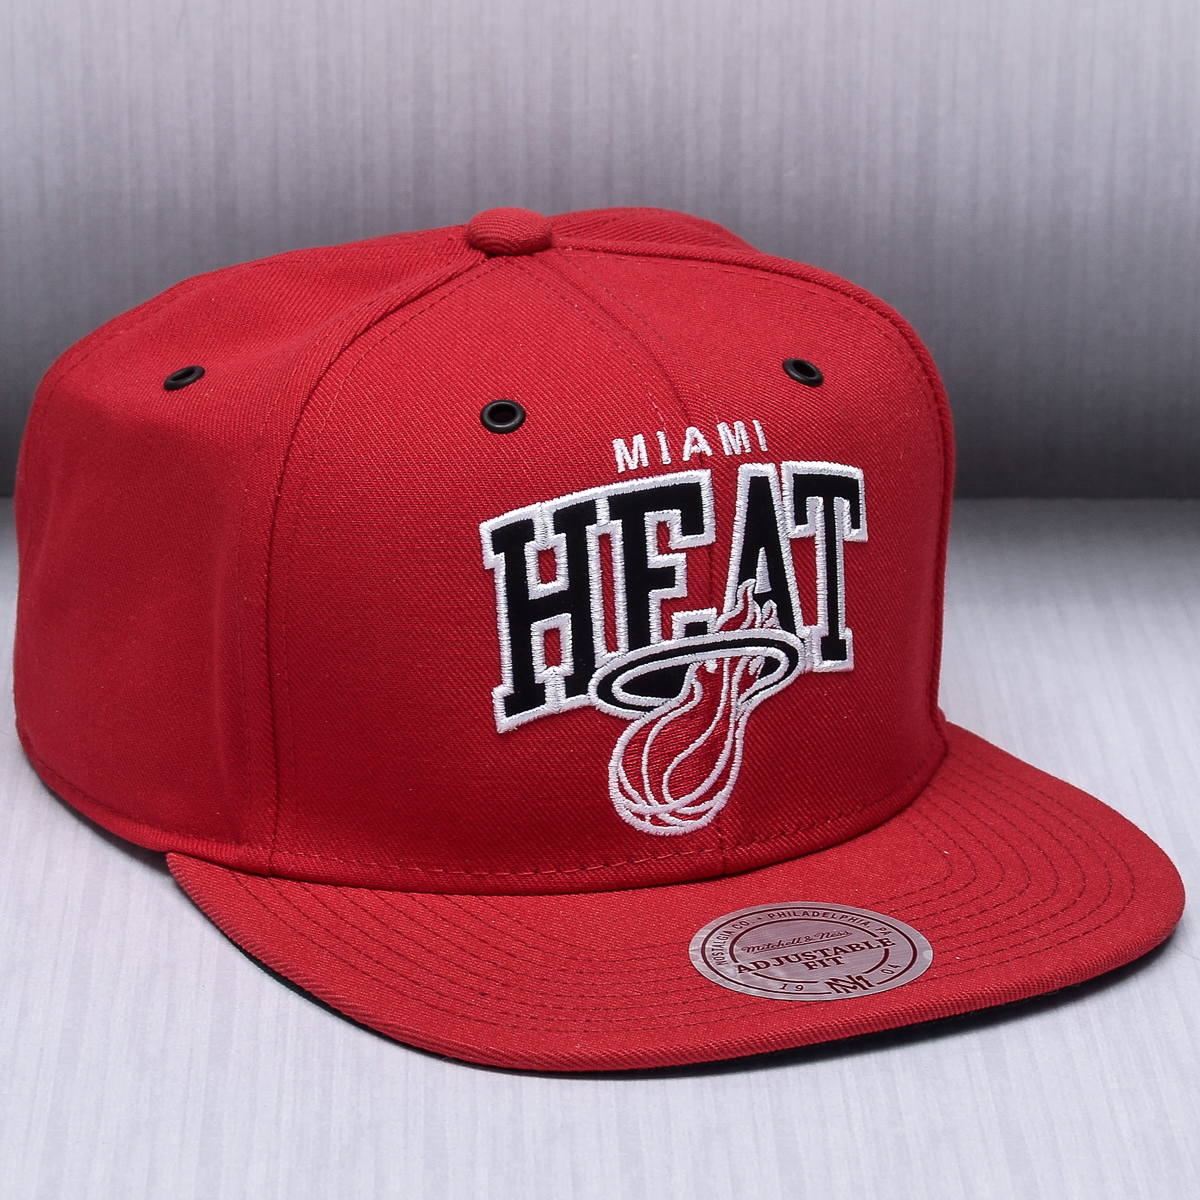 976f0ace4a627 ... canada mitchell ness nba miami heat black and white arch snapback cap  6a3d0 f6a78